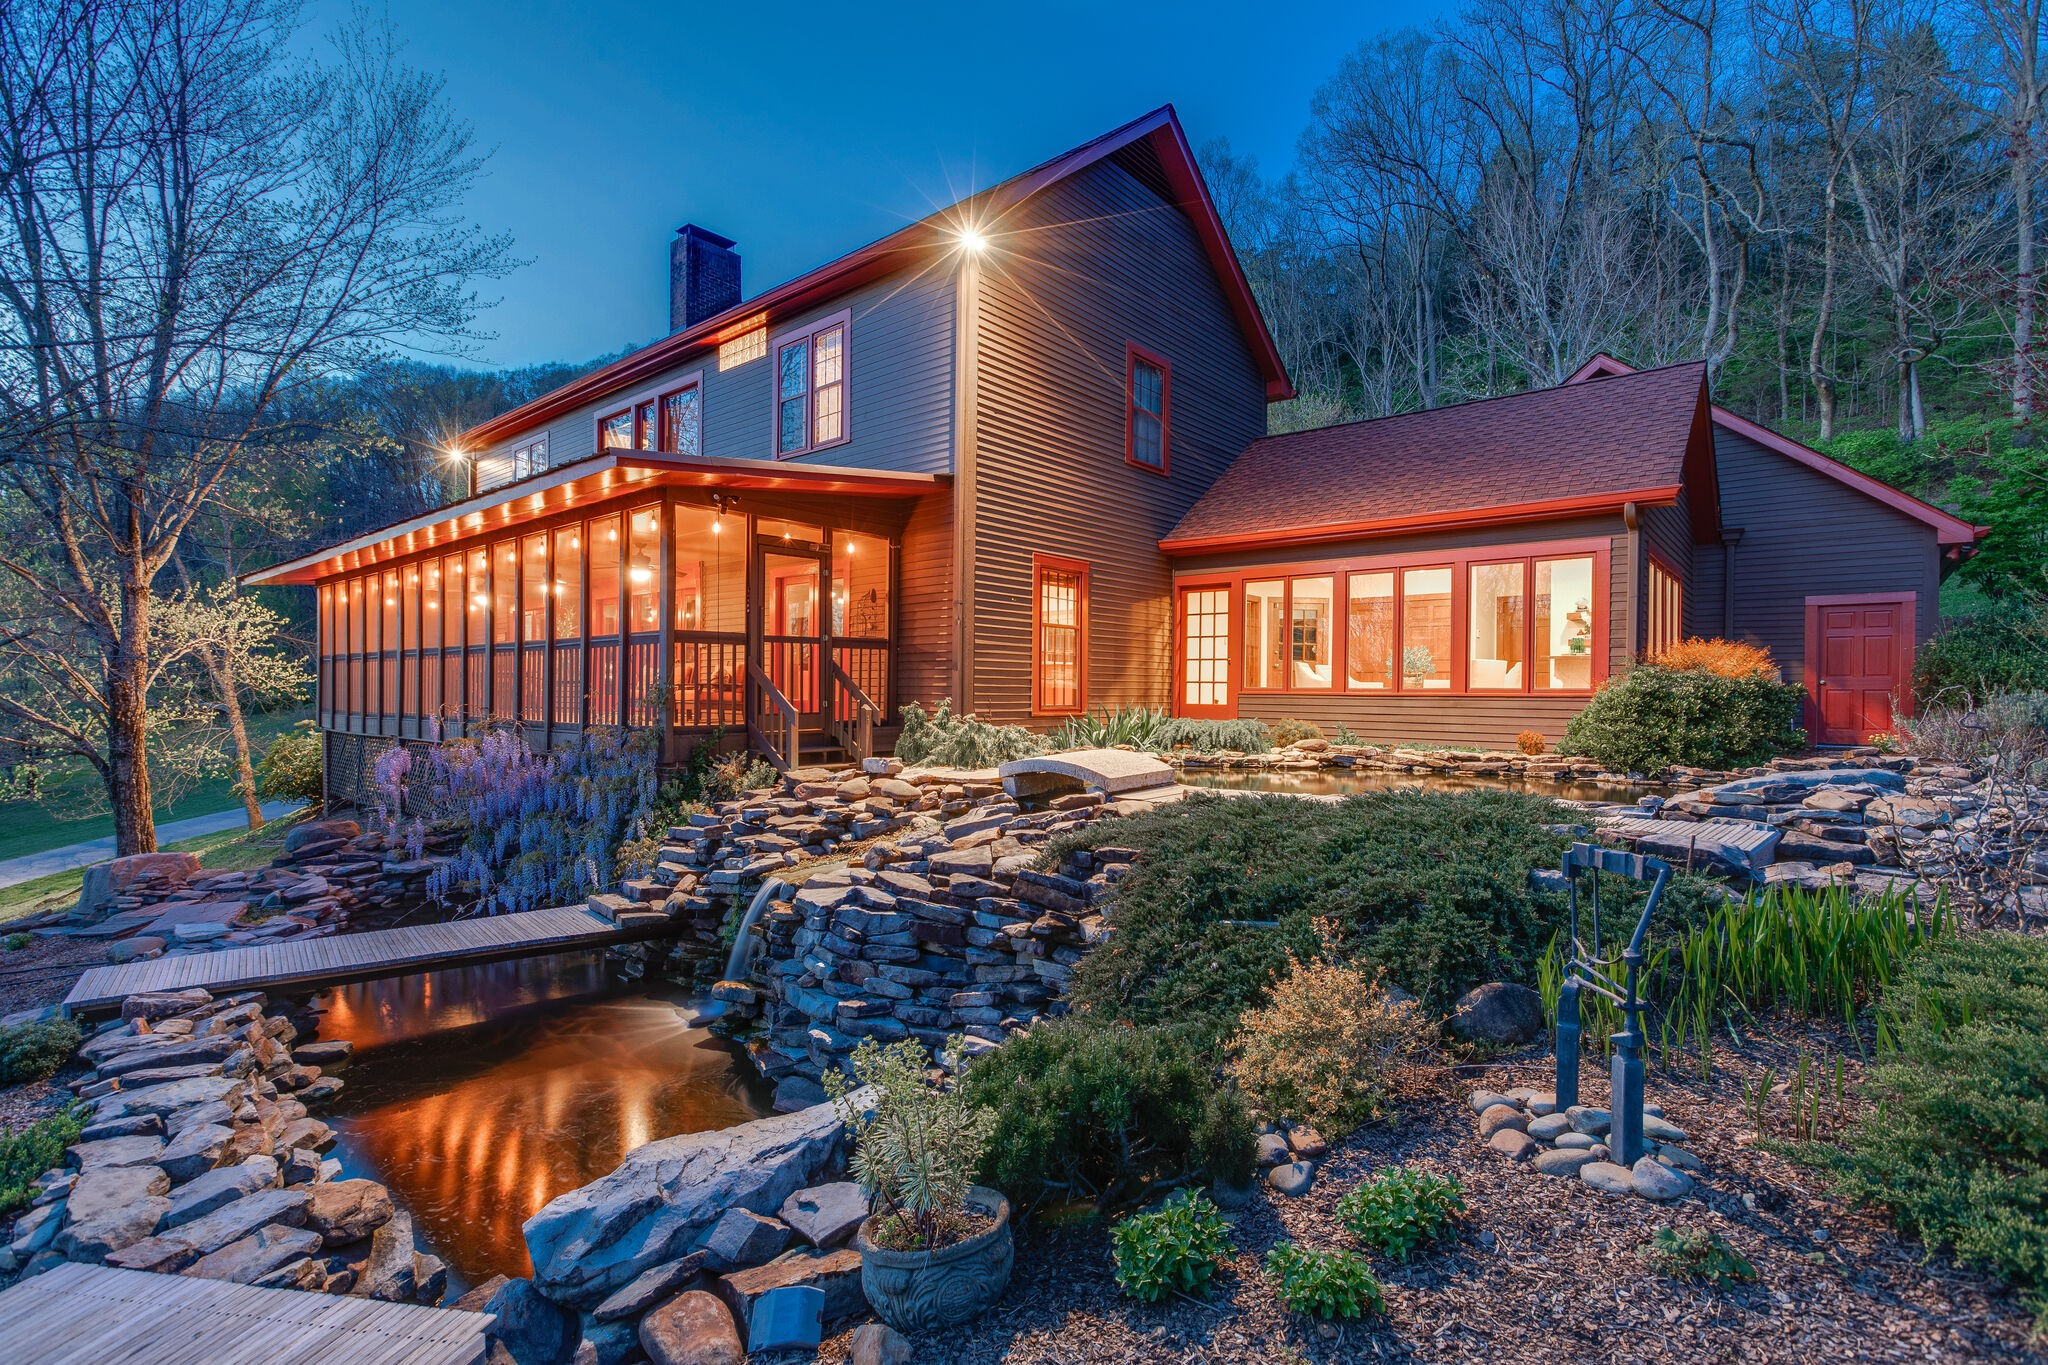 Beautifully maintained cult-de-sac home nestled on 5+ acres in the hills of Brentwood.  Private & secluded yet minutes to Cool Springs, downtown Franklin and interstate.  Open floor plan makes entertaining easy and effortless.  Windows flood the home with natural light & gorgeous views.  Relax on the expansive screened-in porch & enjoy breathtaking sunsets, listen to the sounds of the koi pond waterfall & watch the wildlife. A true retreat! (Soil engineer att. letter states potential for 3 BD).